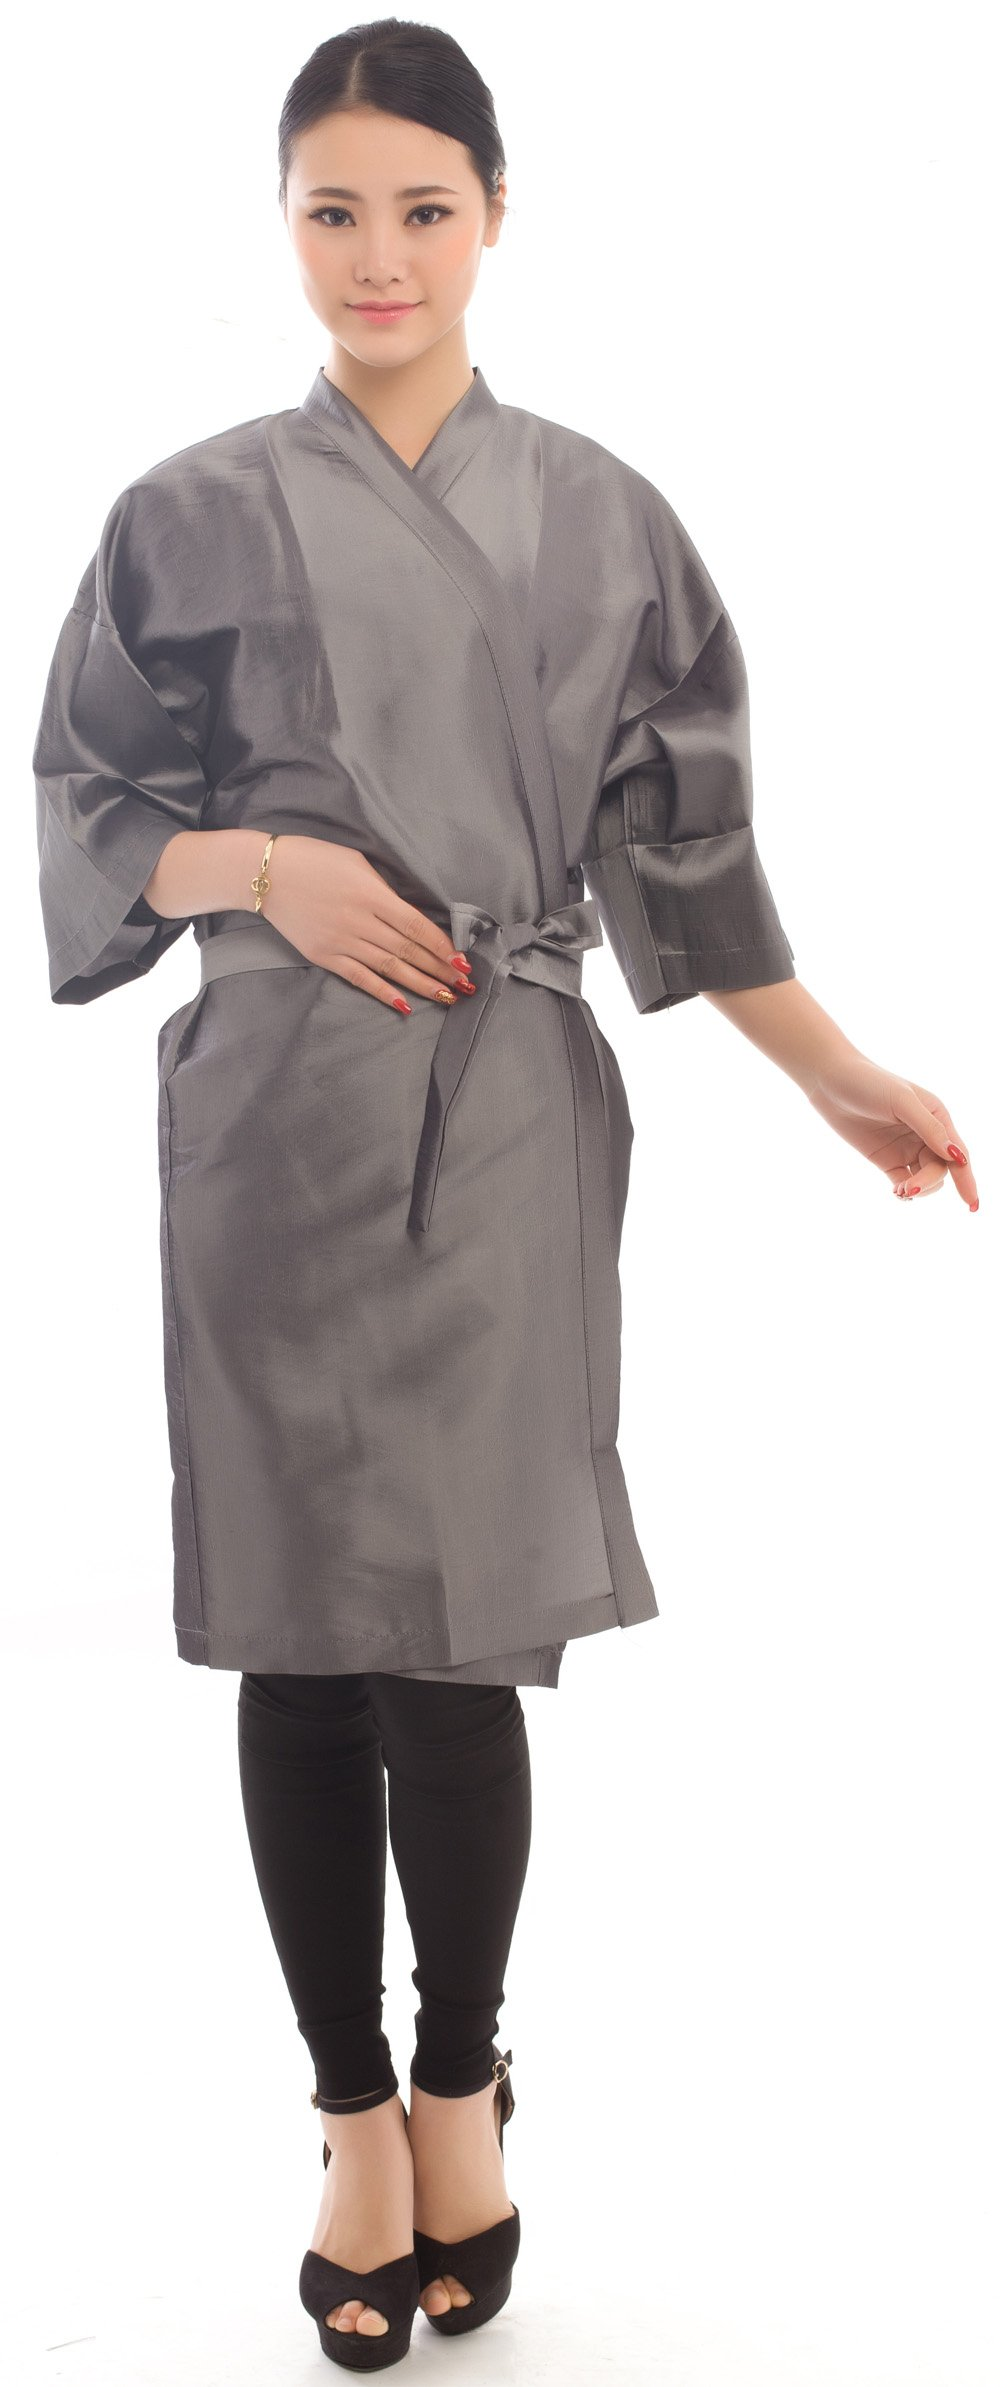 Salon Client Gown Robes Cape, Hair Salon Smock for Clients- Kimono Style (Grey) by PERFEHAIR